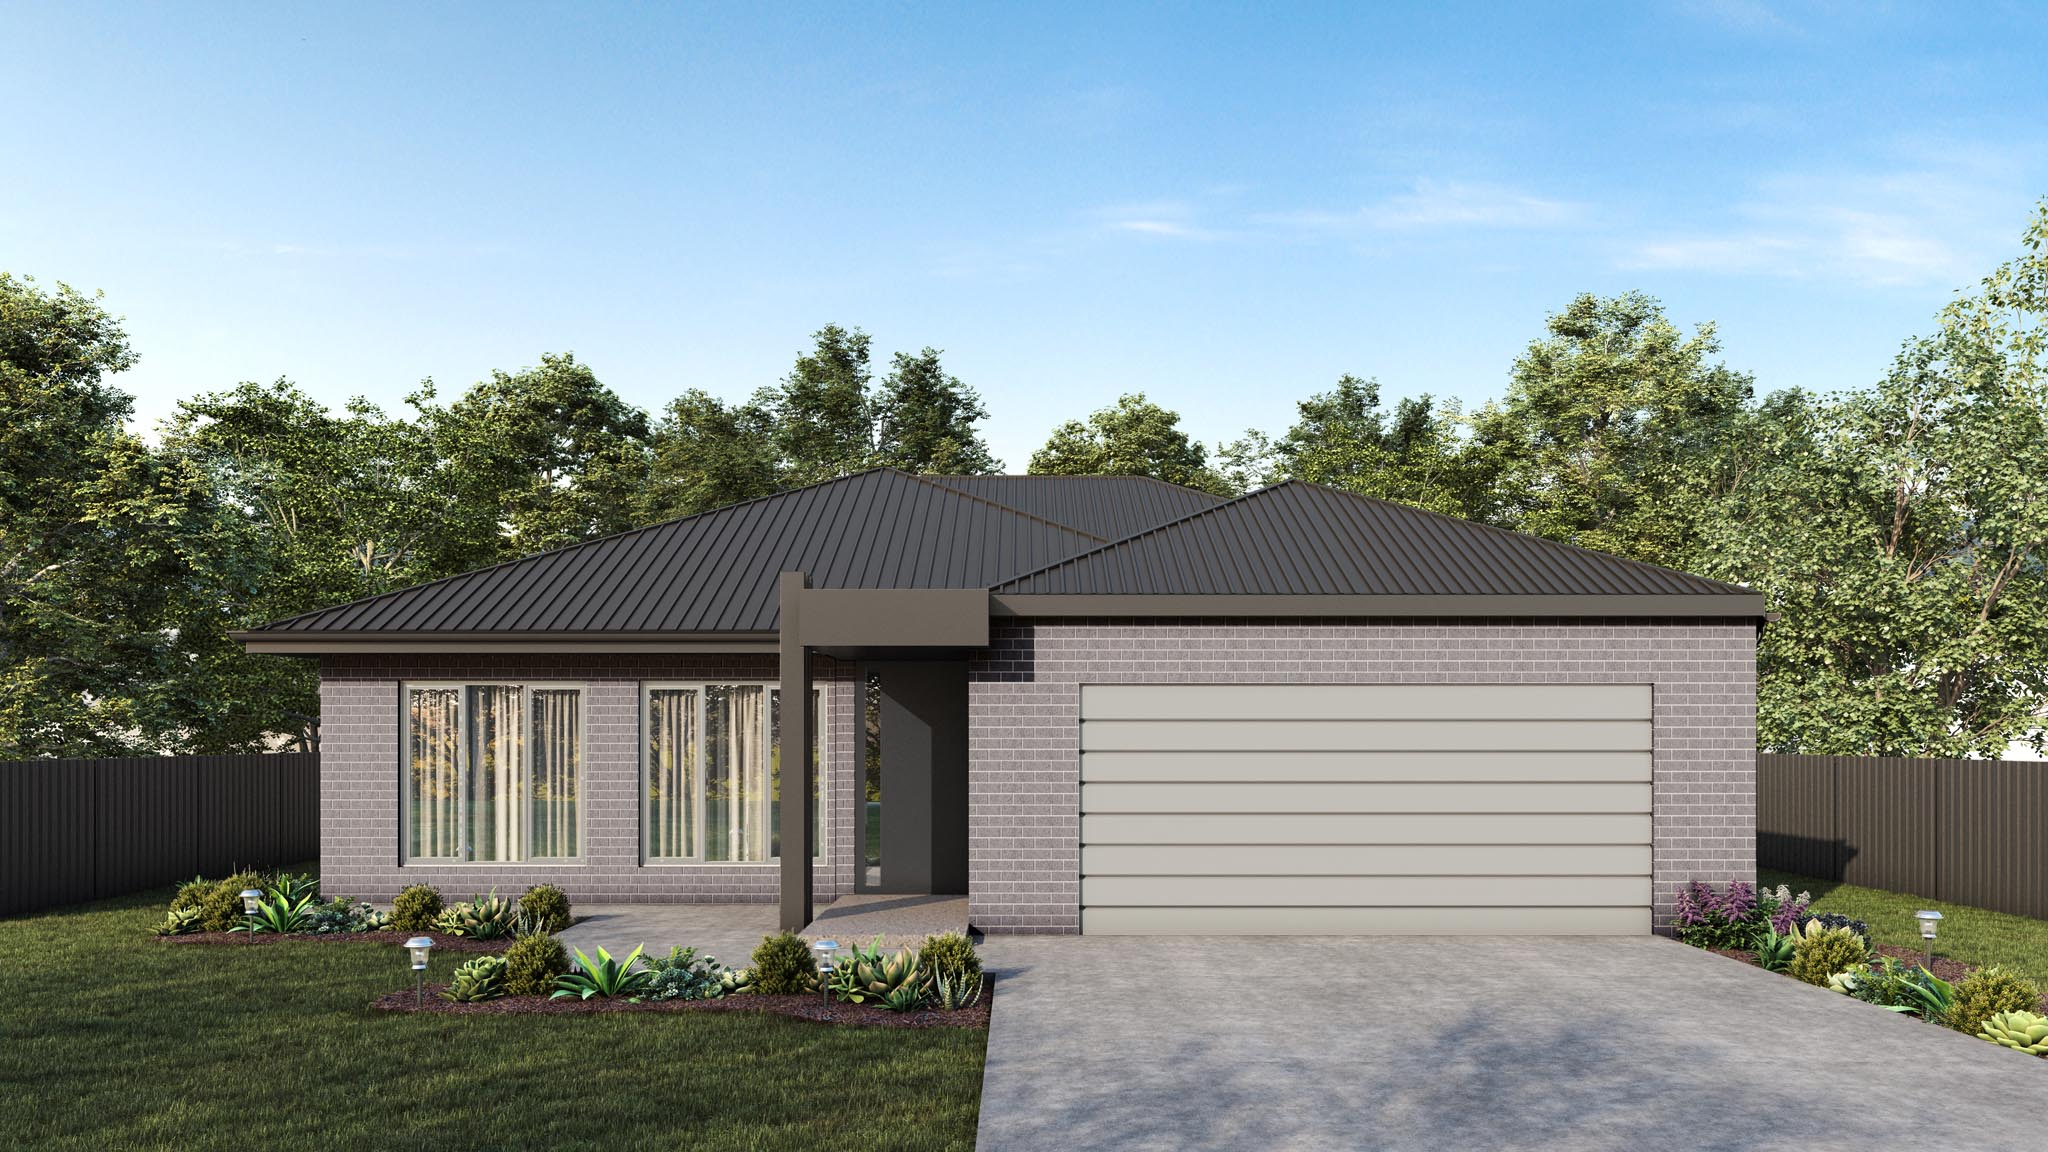 Lot 110 Clifton Gardens - Griffith Real Estate Agents - JZ Homes